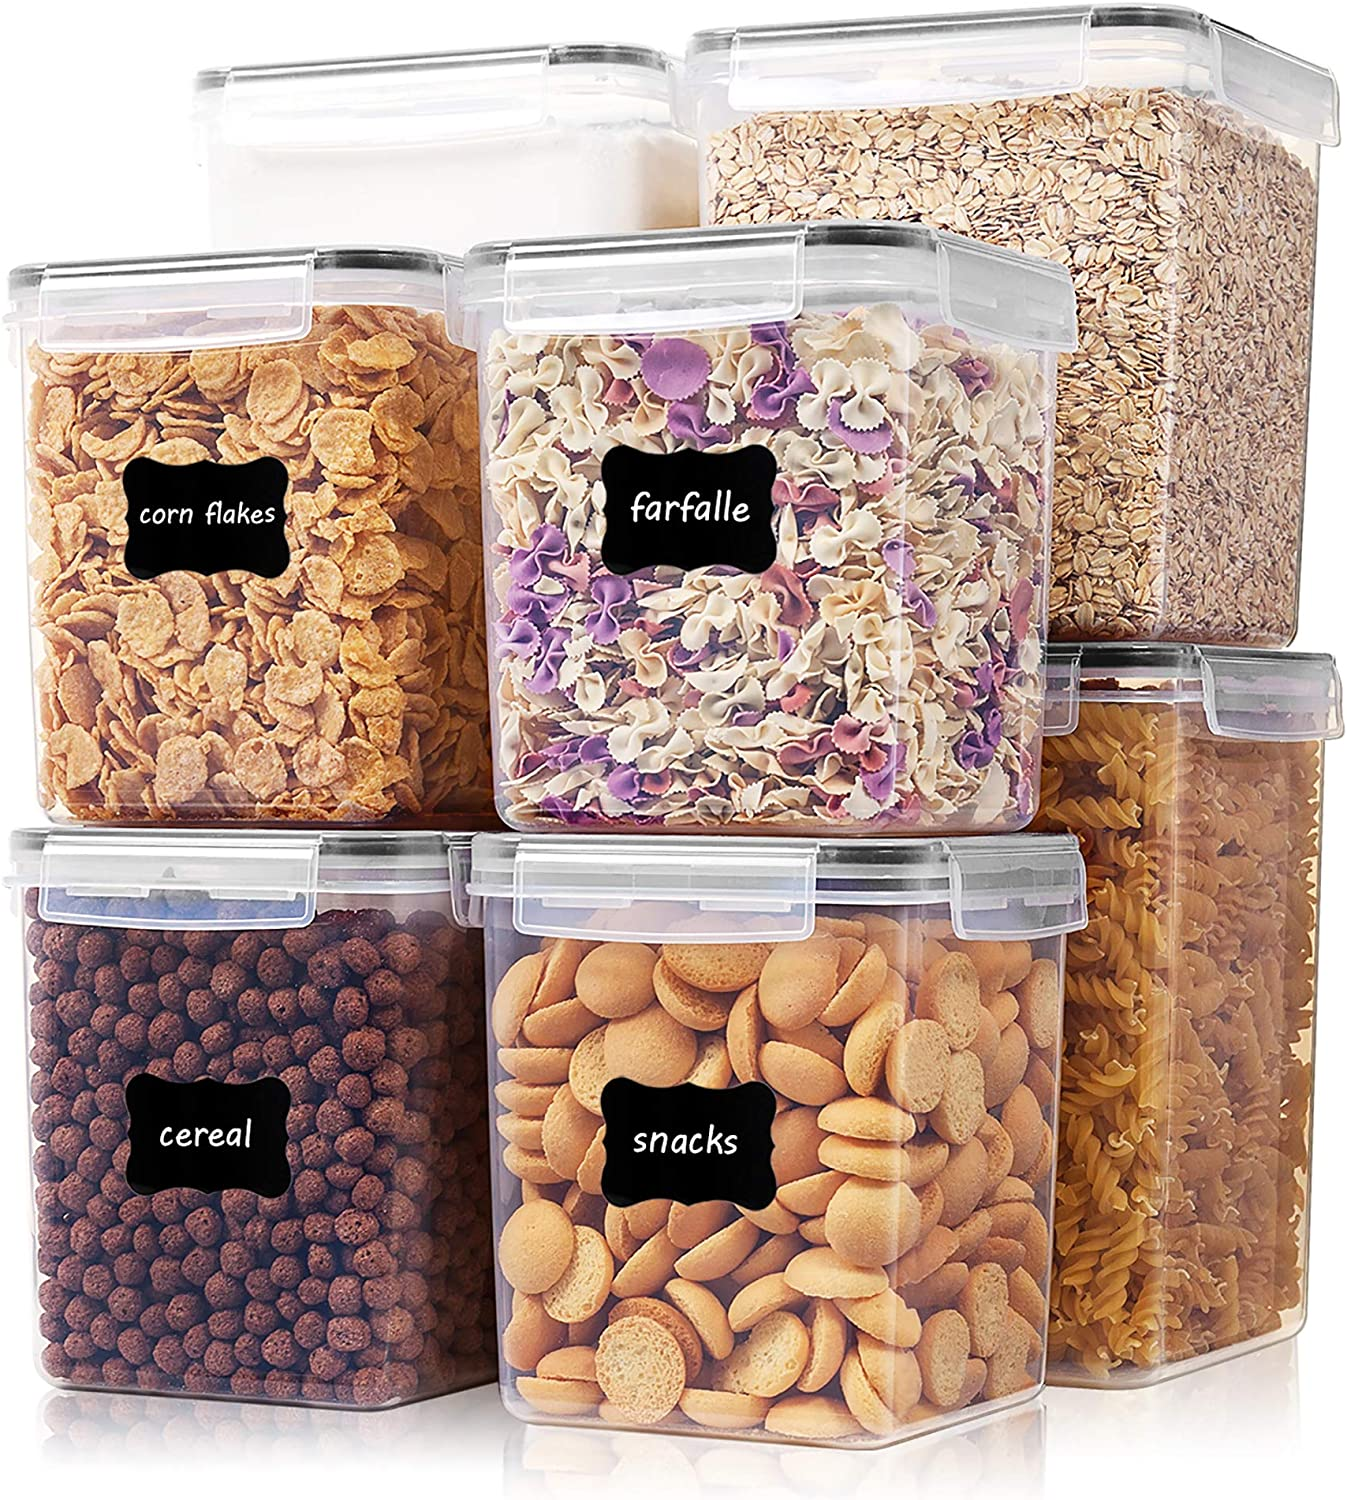 Large Tall Airtight Food Storage Containers 8 Pieces, Vtopmart BPA Free Plastic Kitchen Storage Containers for Bulk Food, Flour, Sugar and Baking Supplies, with 24 Labels, Black